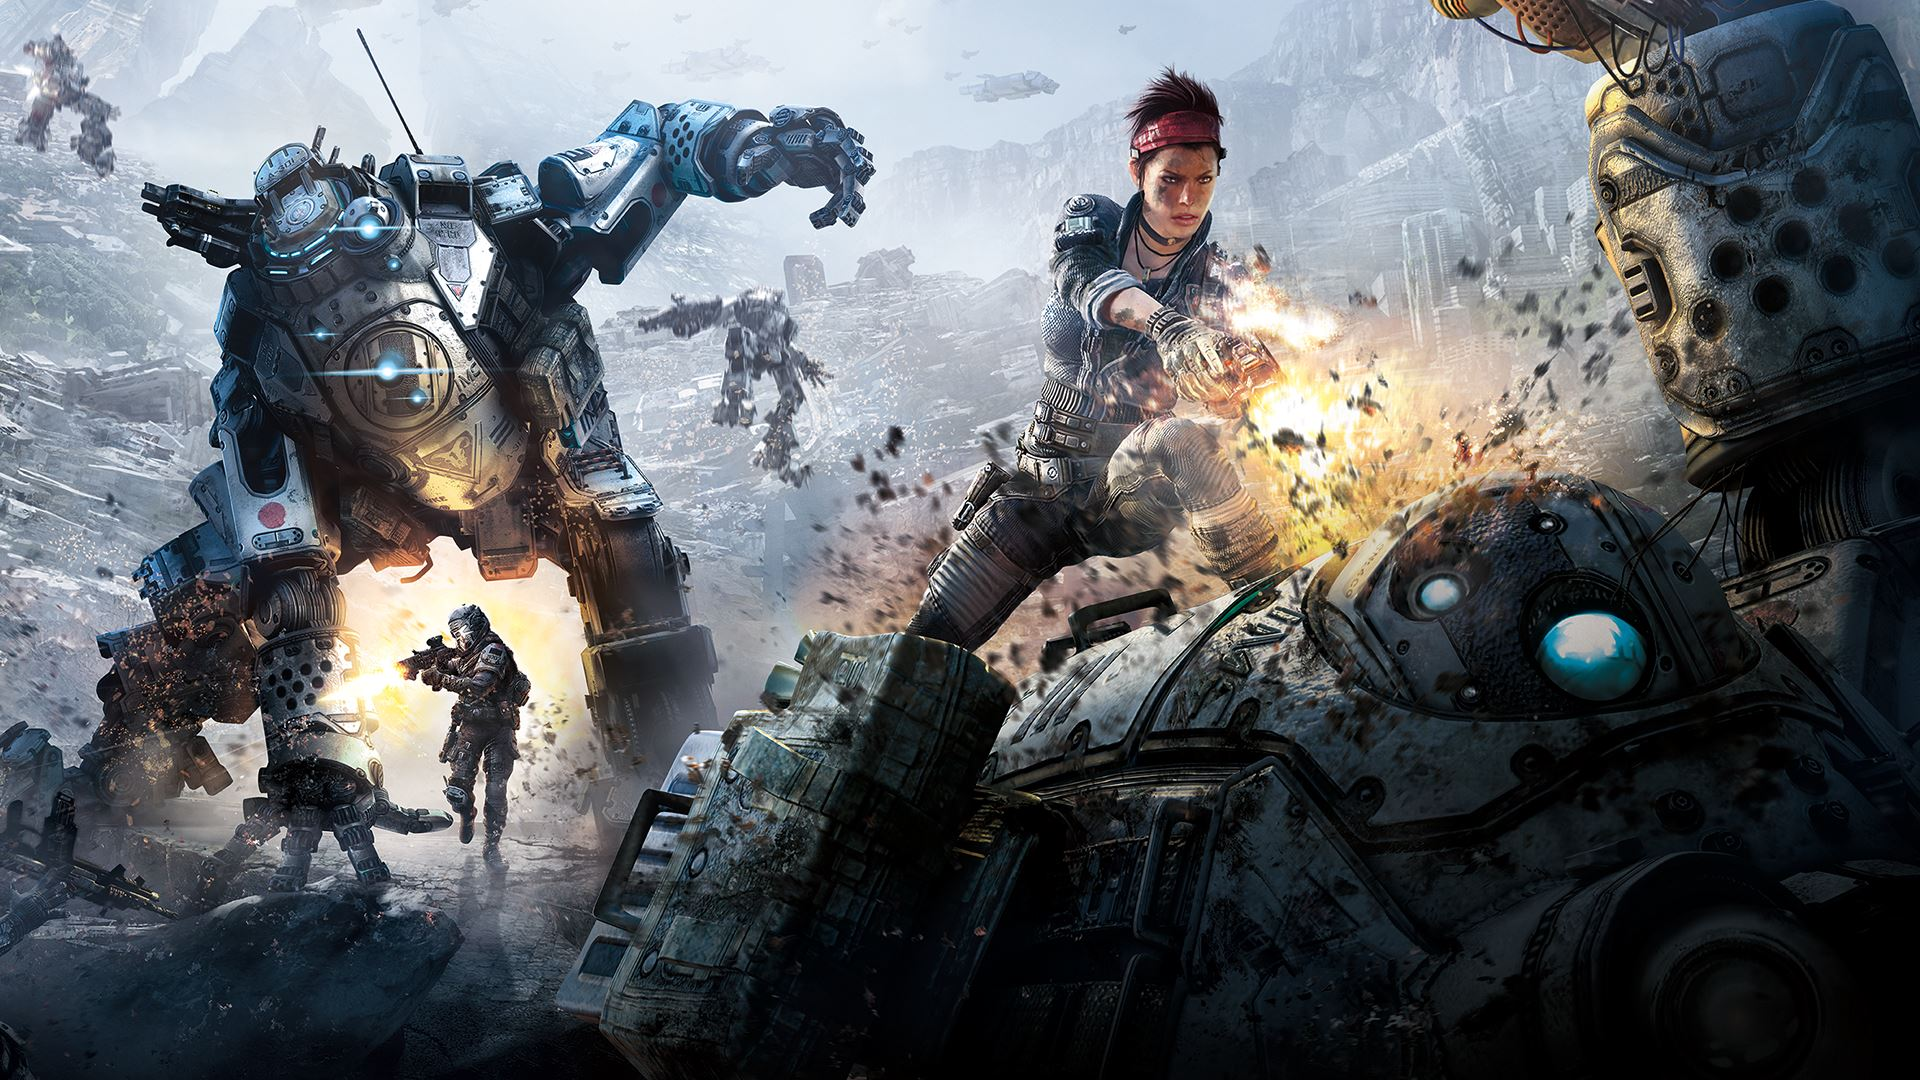 ogqtpqeys42x4tsvzcm6 Titanfall 2 To Receive Big Changes Following Negative Fan Reception